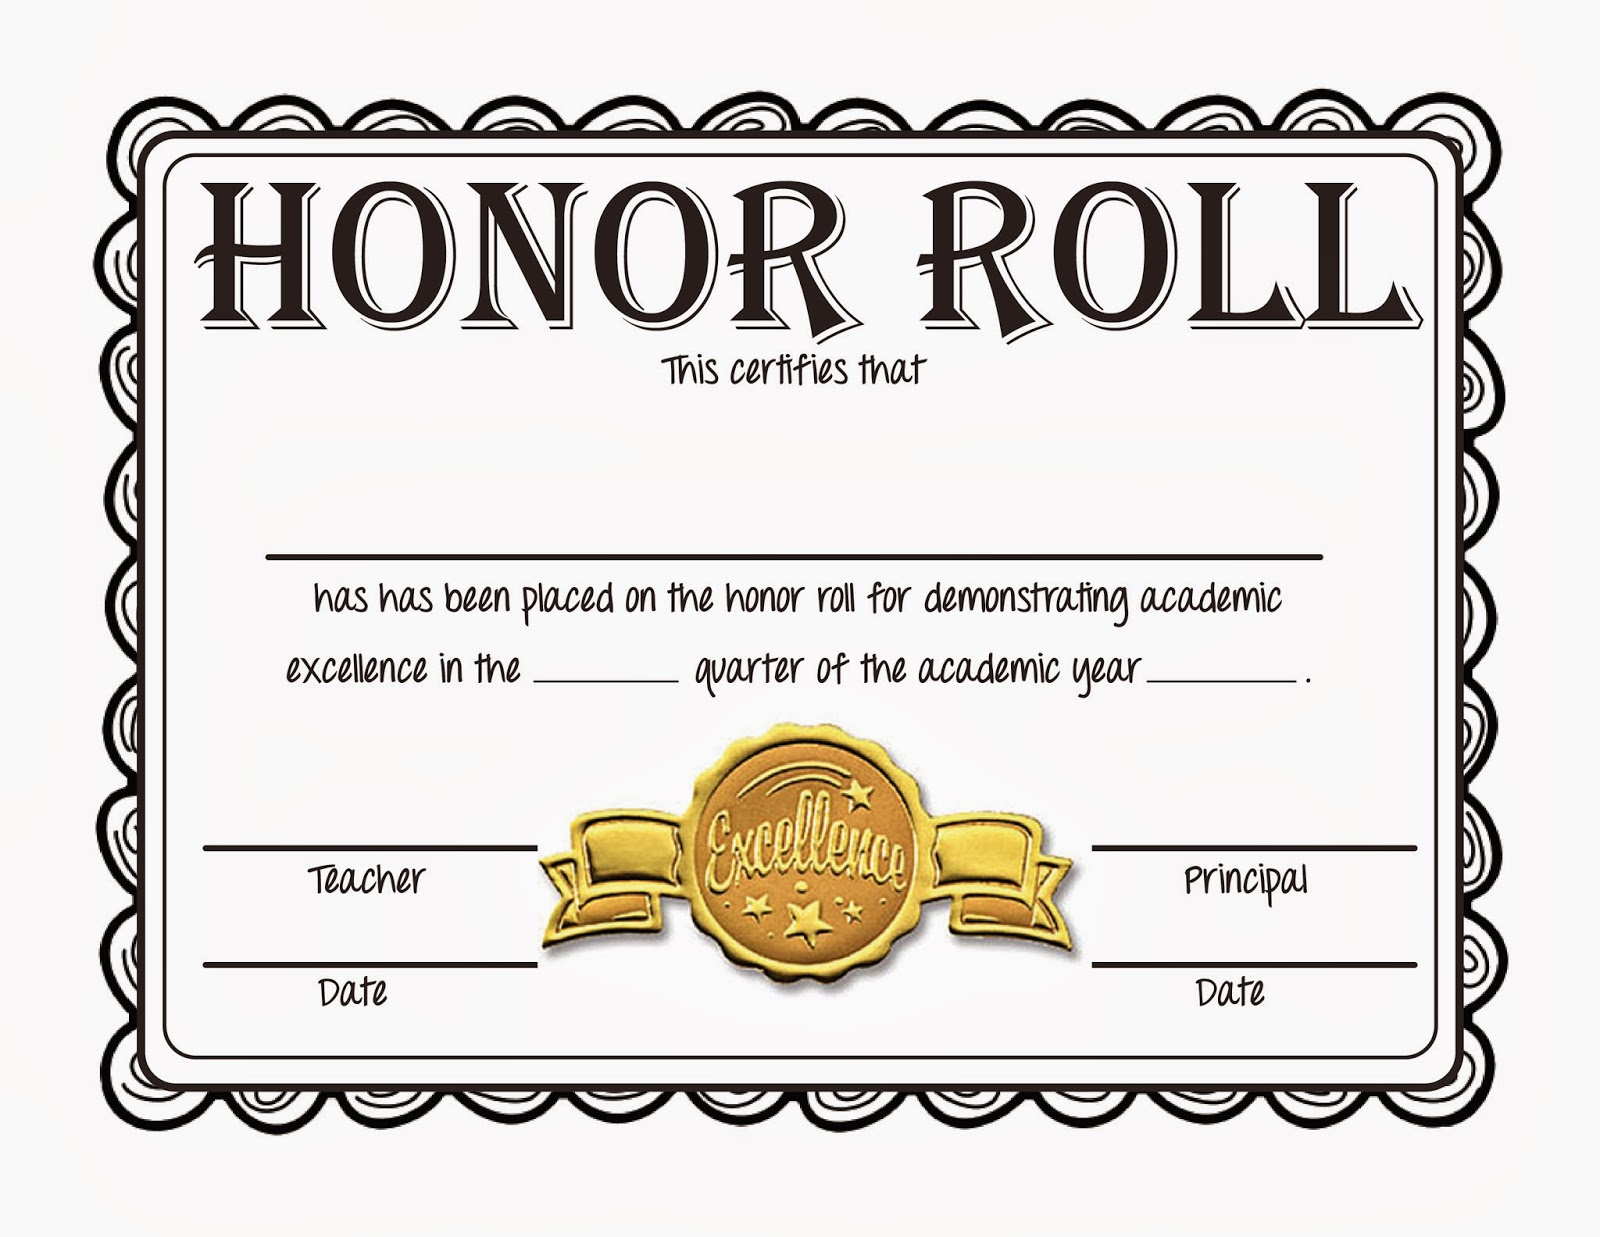 Student certificate templates wedding ceremony template free honor roll certificate template gbabogadosco honor2broll2bcertificate2b1 01 honor roll certificate yadclub Gallery